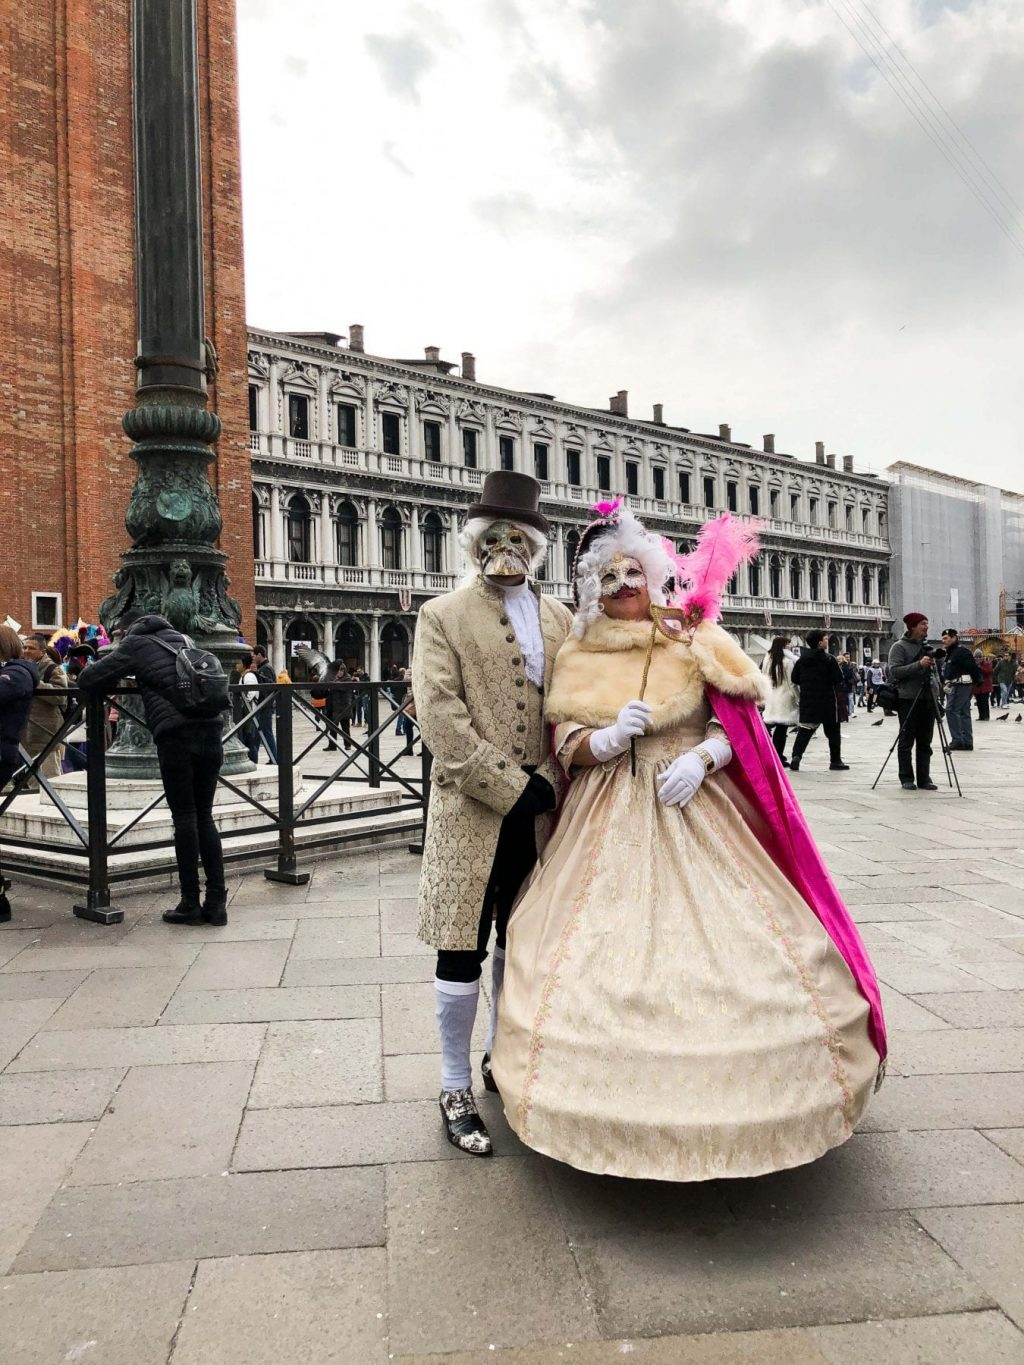 carnaval, italy, rome, venice, hats, masks, costues, carnival, italia